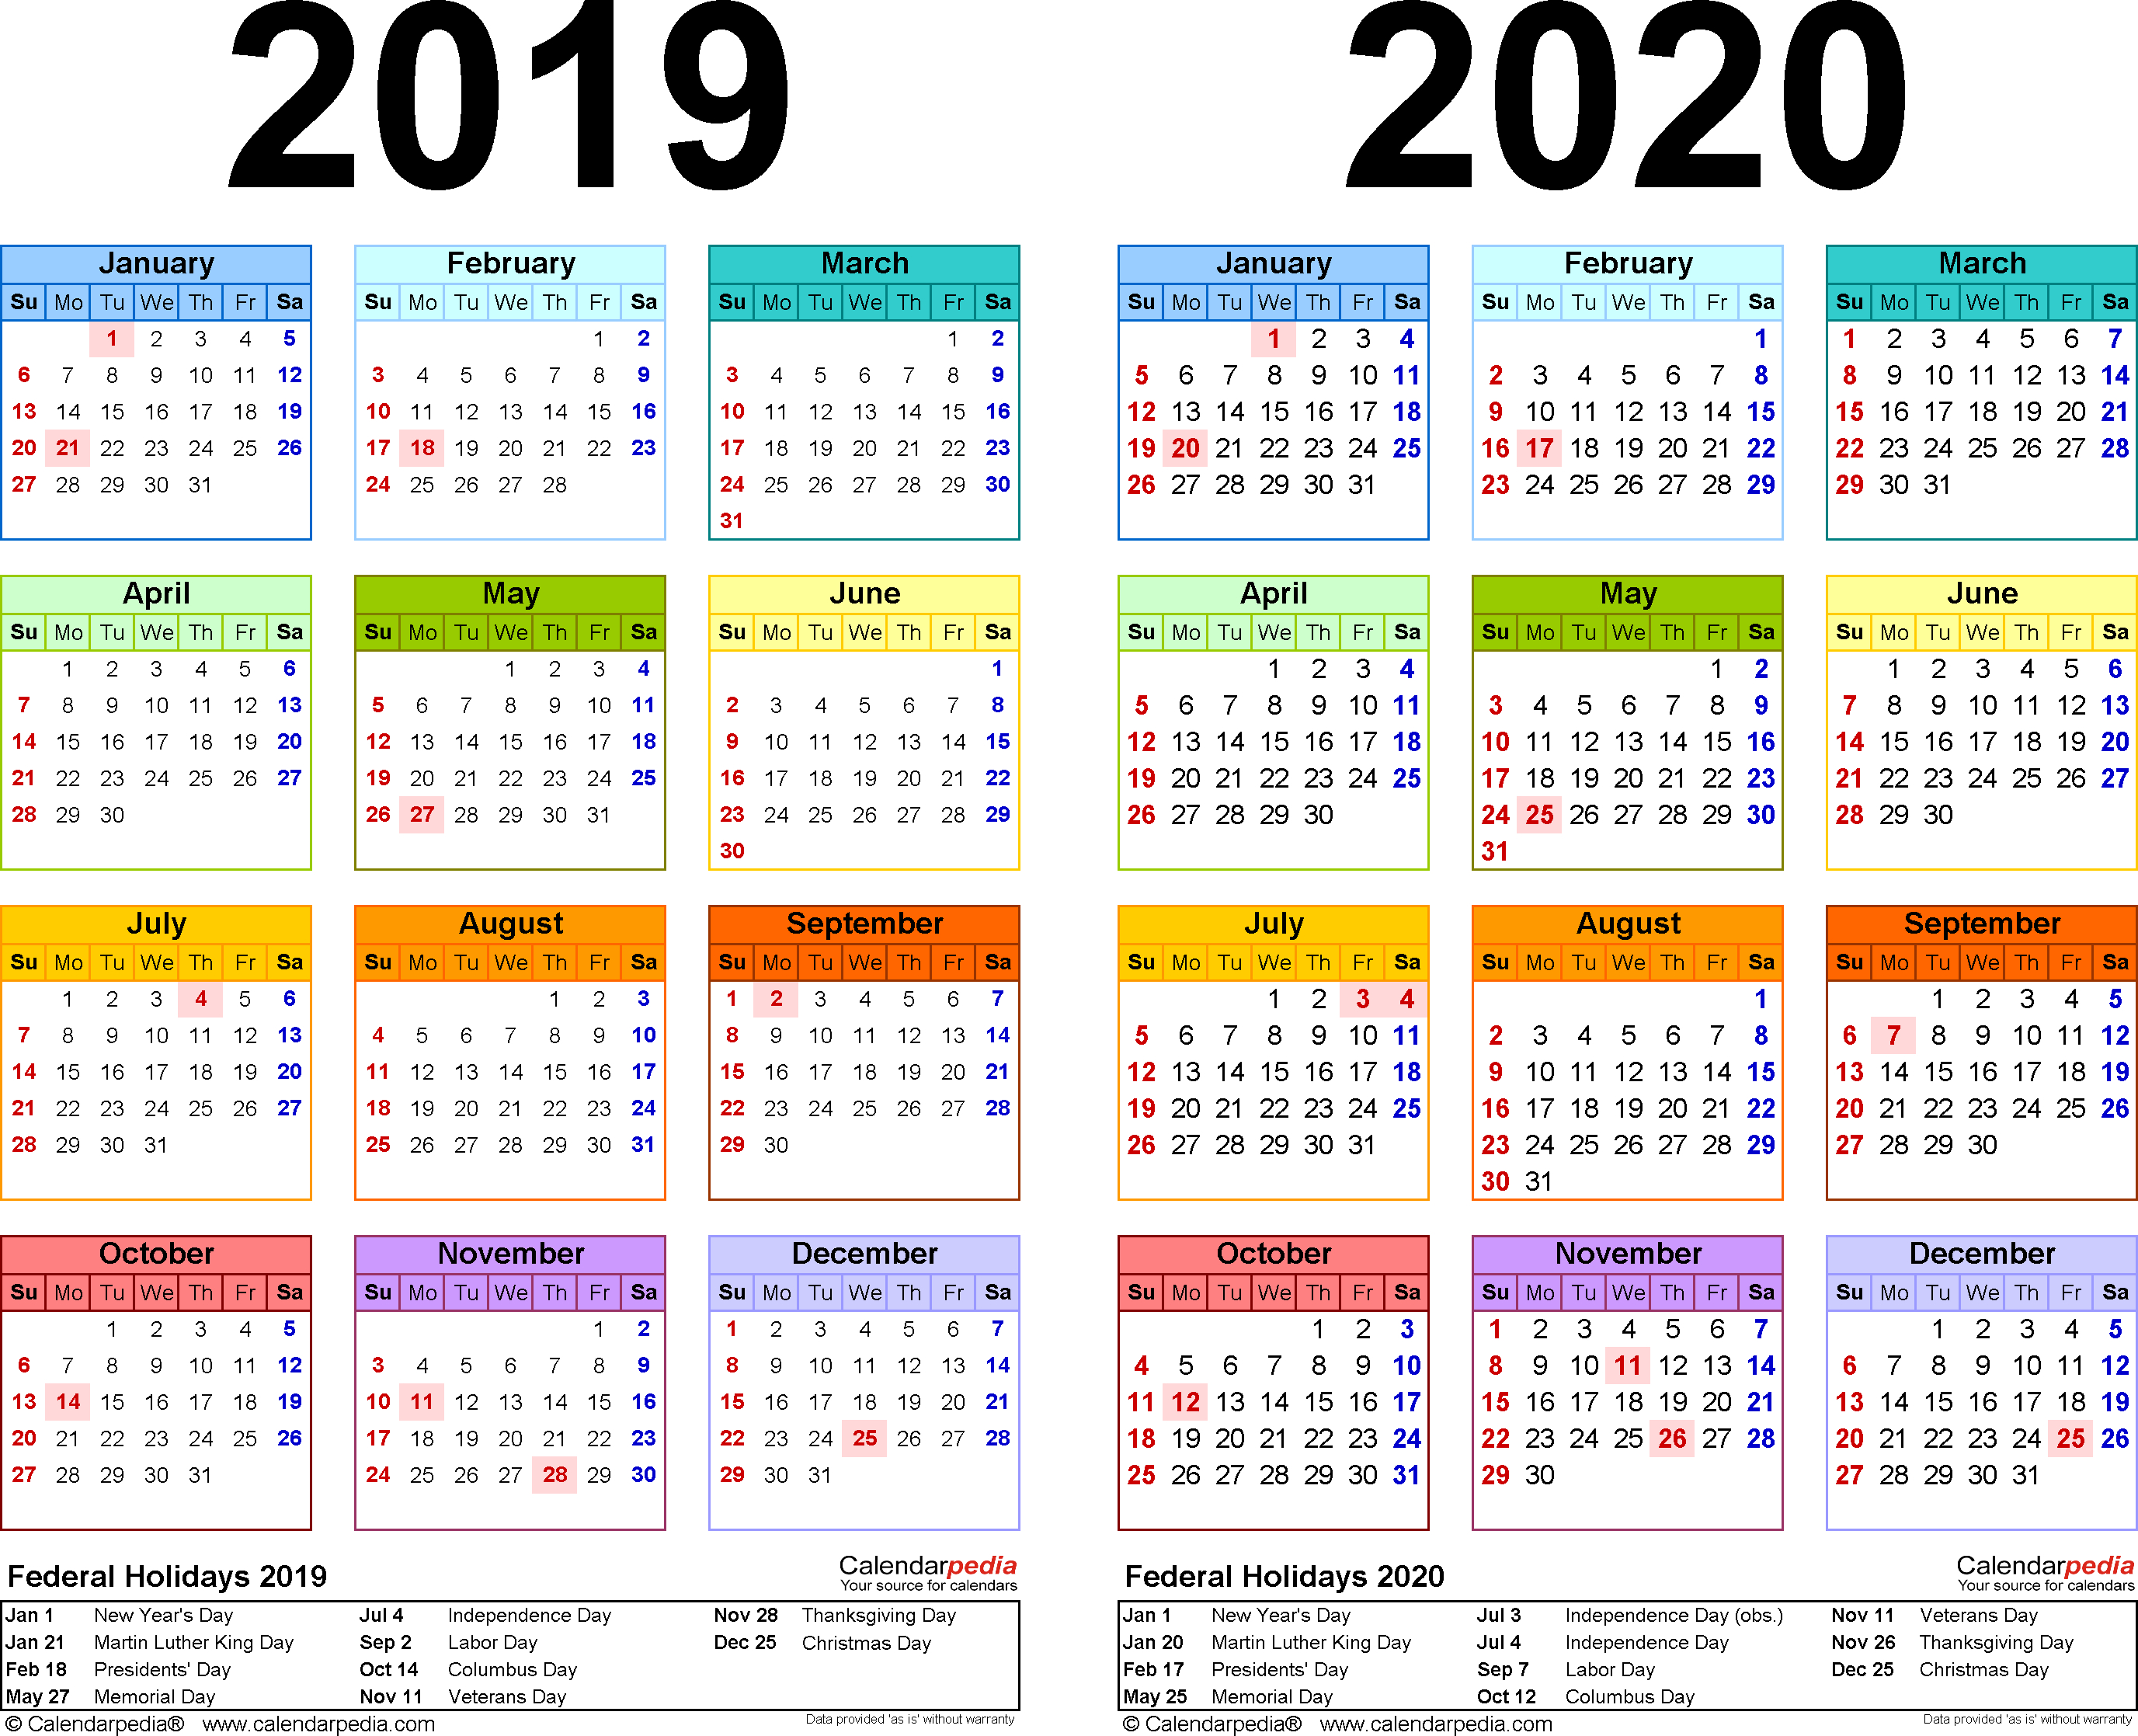 2019-2020 Calendar - Free Printable Two-Year Excel Calendars within 2019- 2020 Academic Calendar Printable Empty Boxes